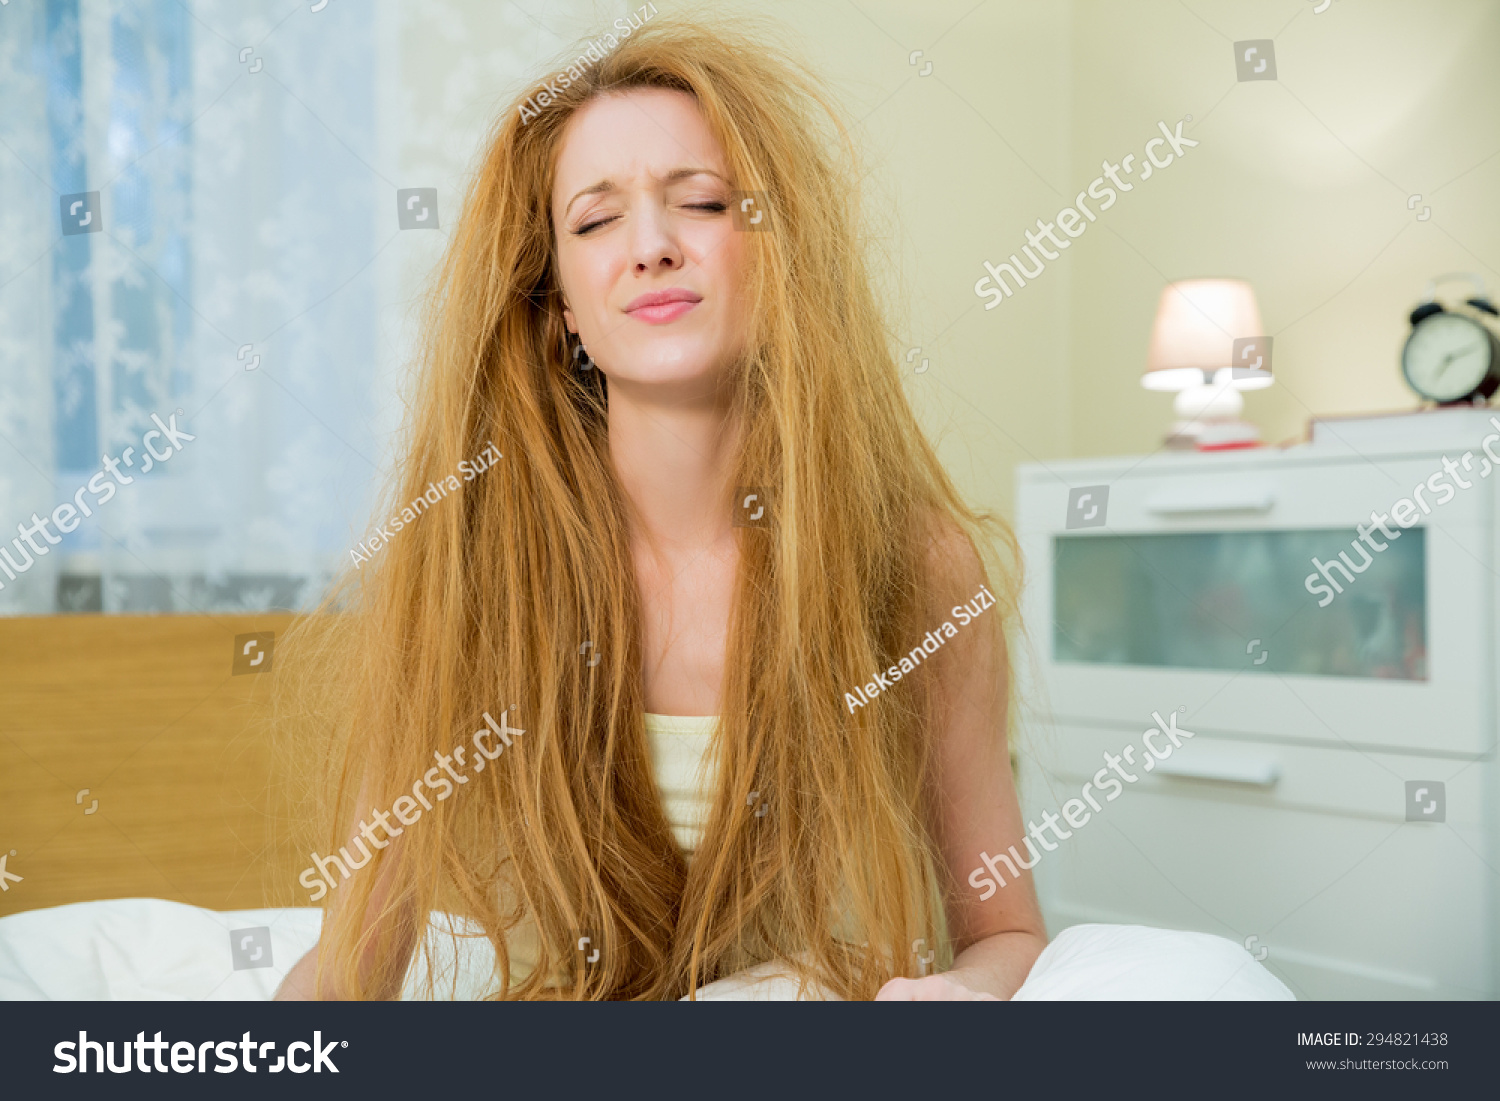 Young Beautiful Woman Messy Hair Stock Photo 294821438